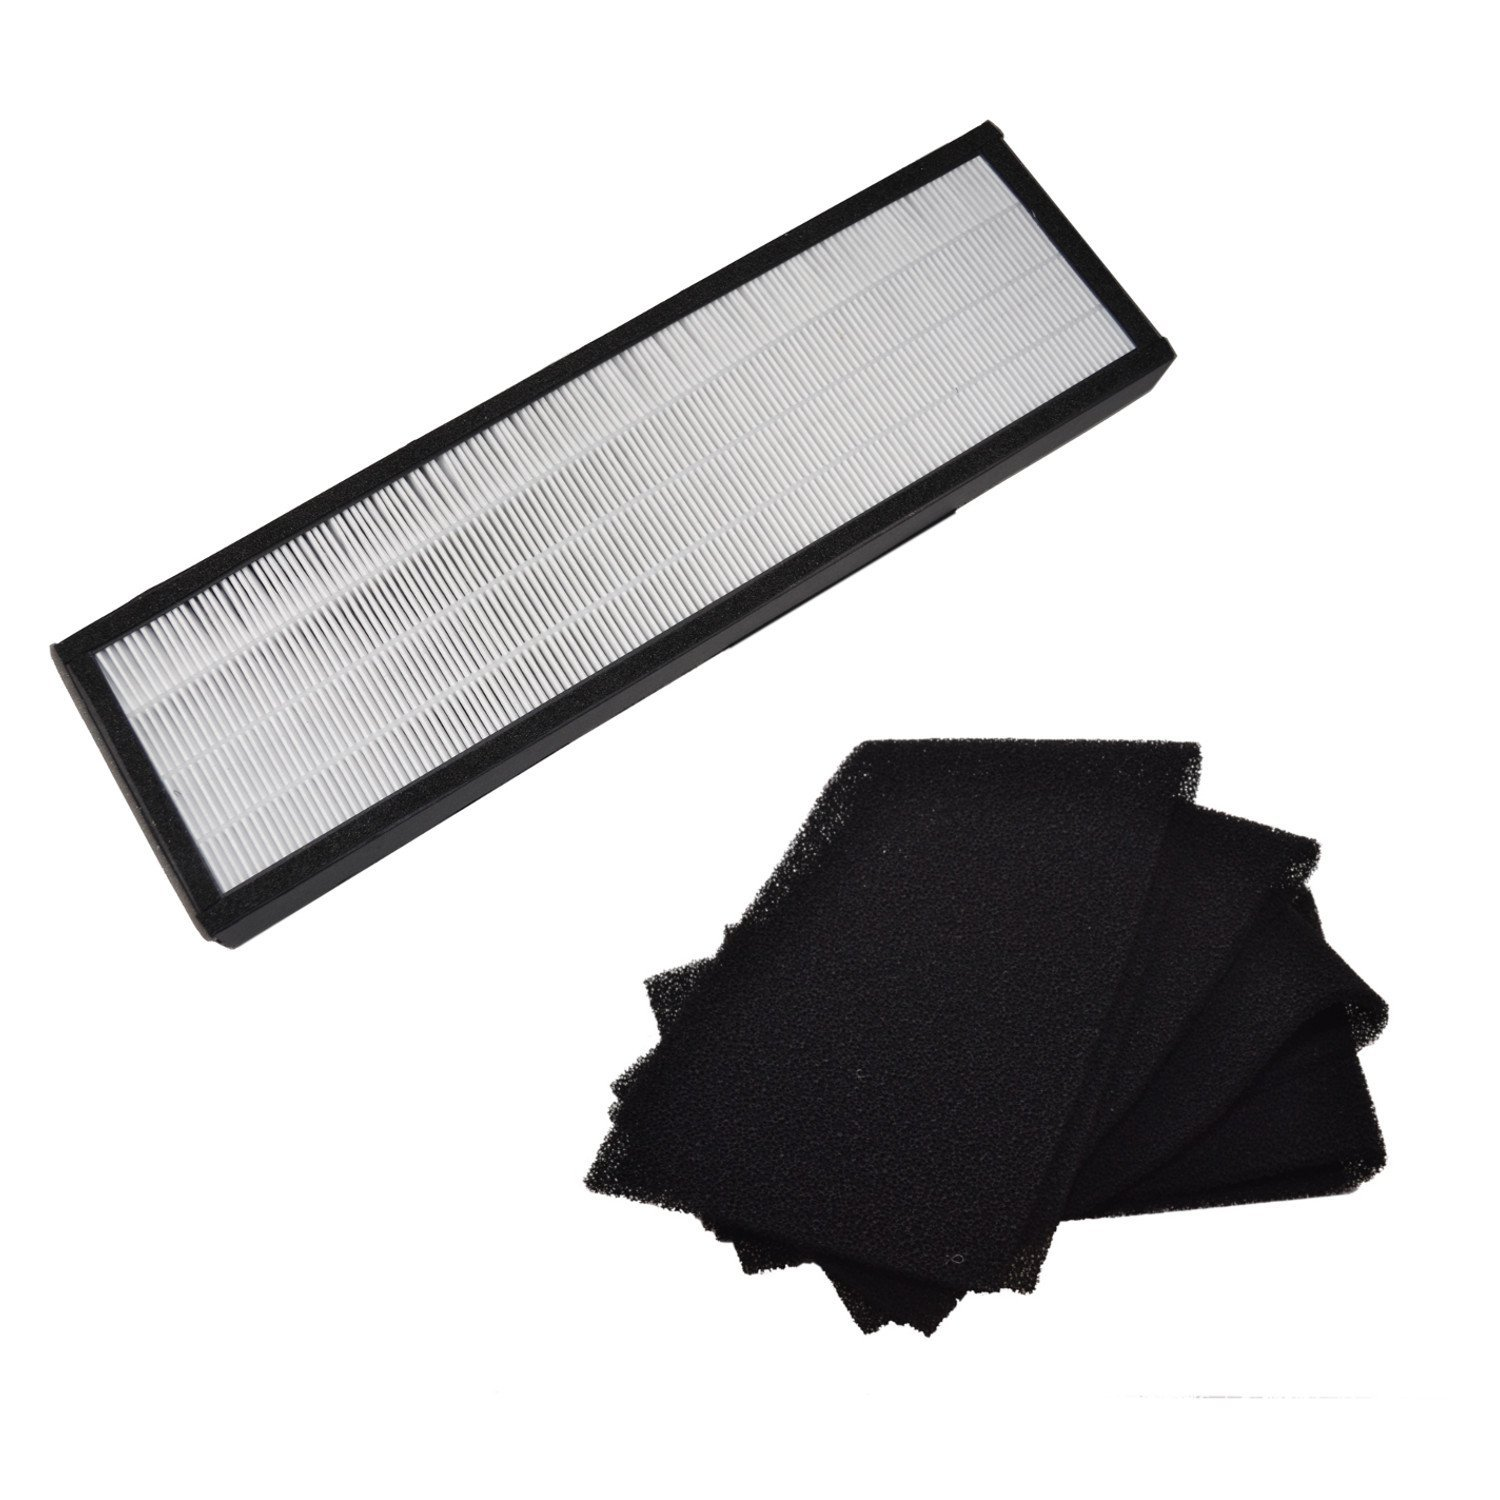 Buy Hqrp 2 Pcs Filter B   4 Pcs Carbon Filters For